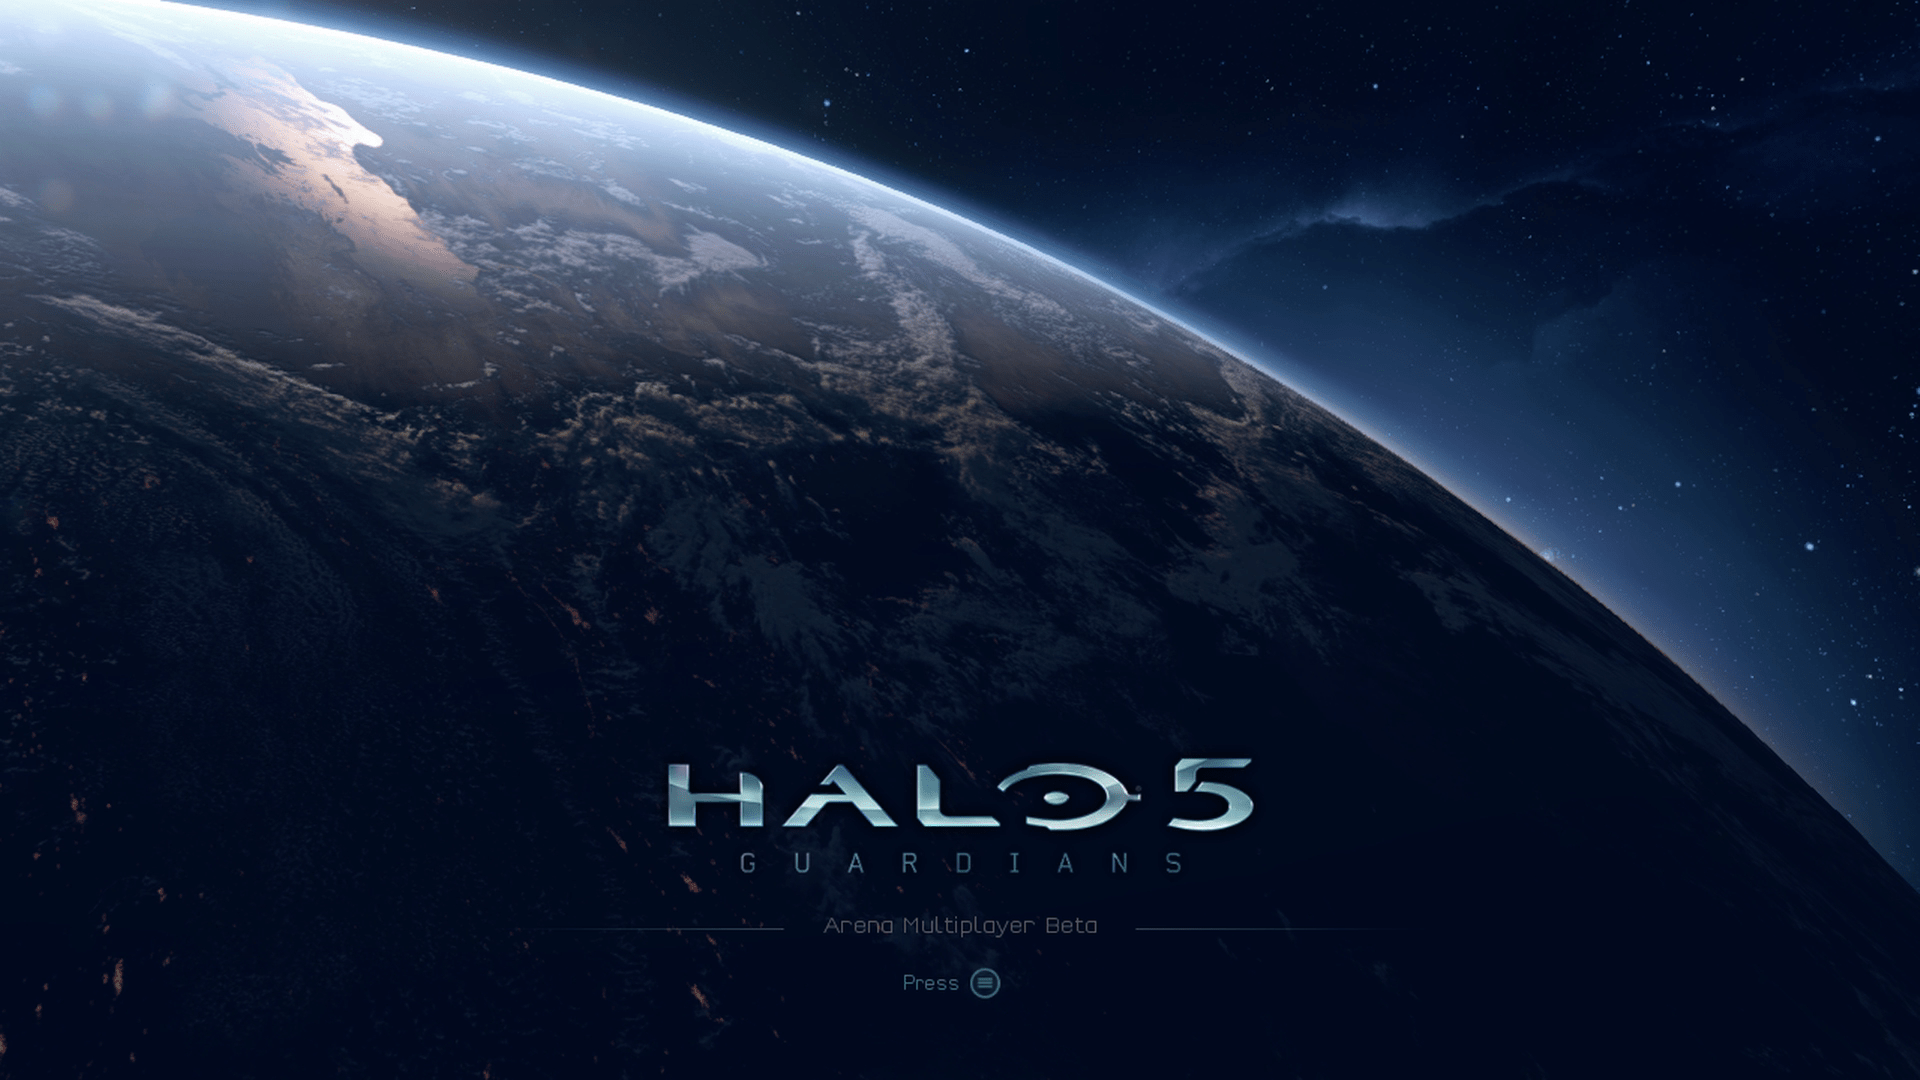 Halo 5 Guardians Hunt the Truth Revealed